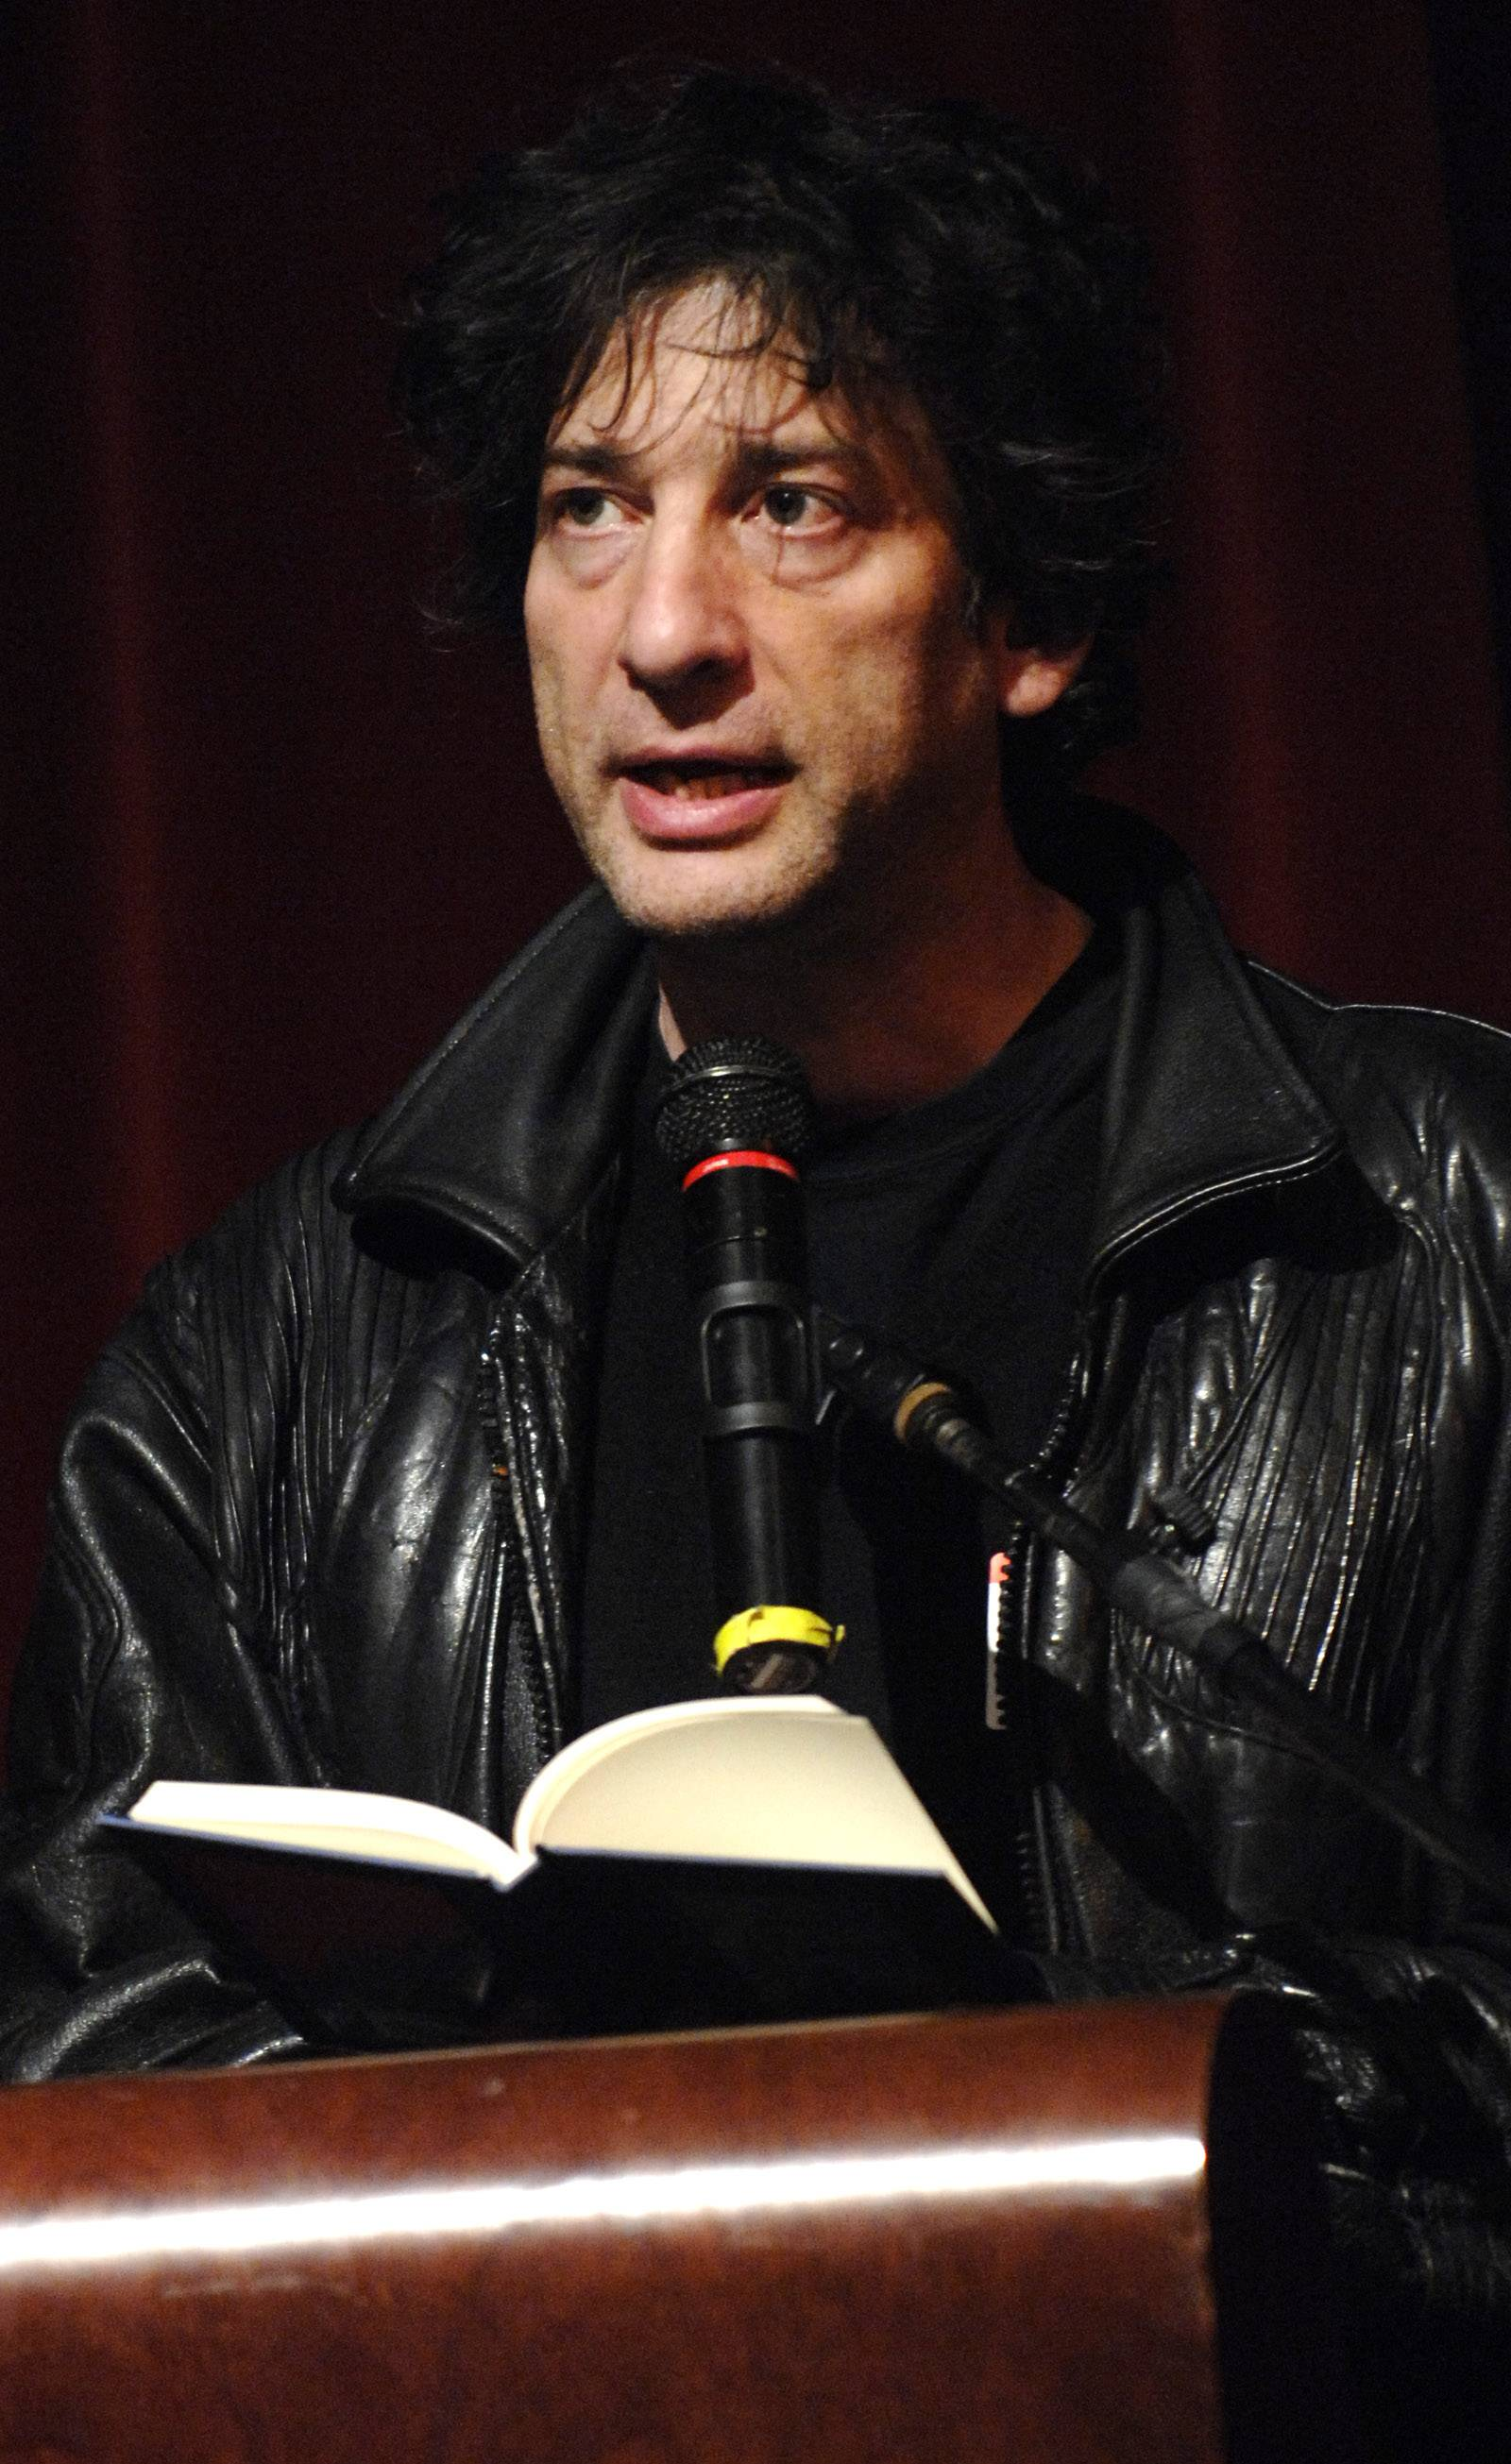 Author Neil Gaiman spent five days here as part of the 2010 Naperville READS program.